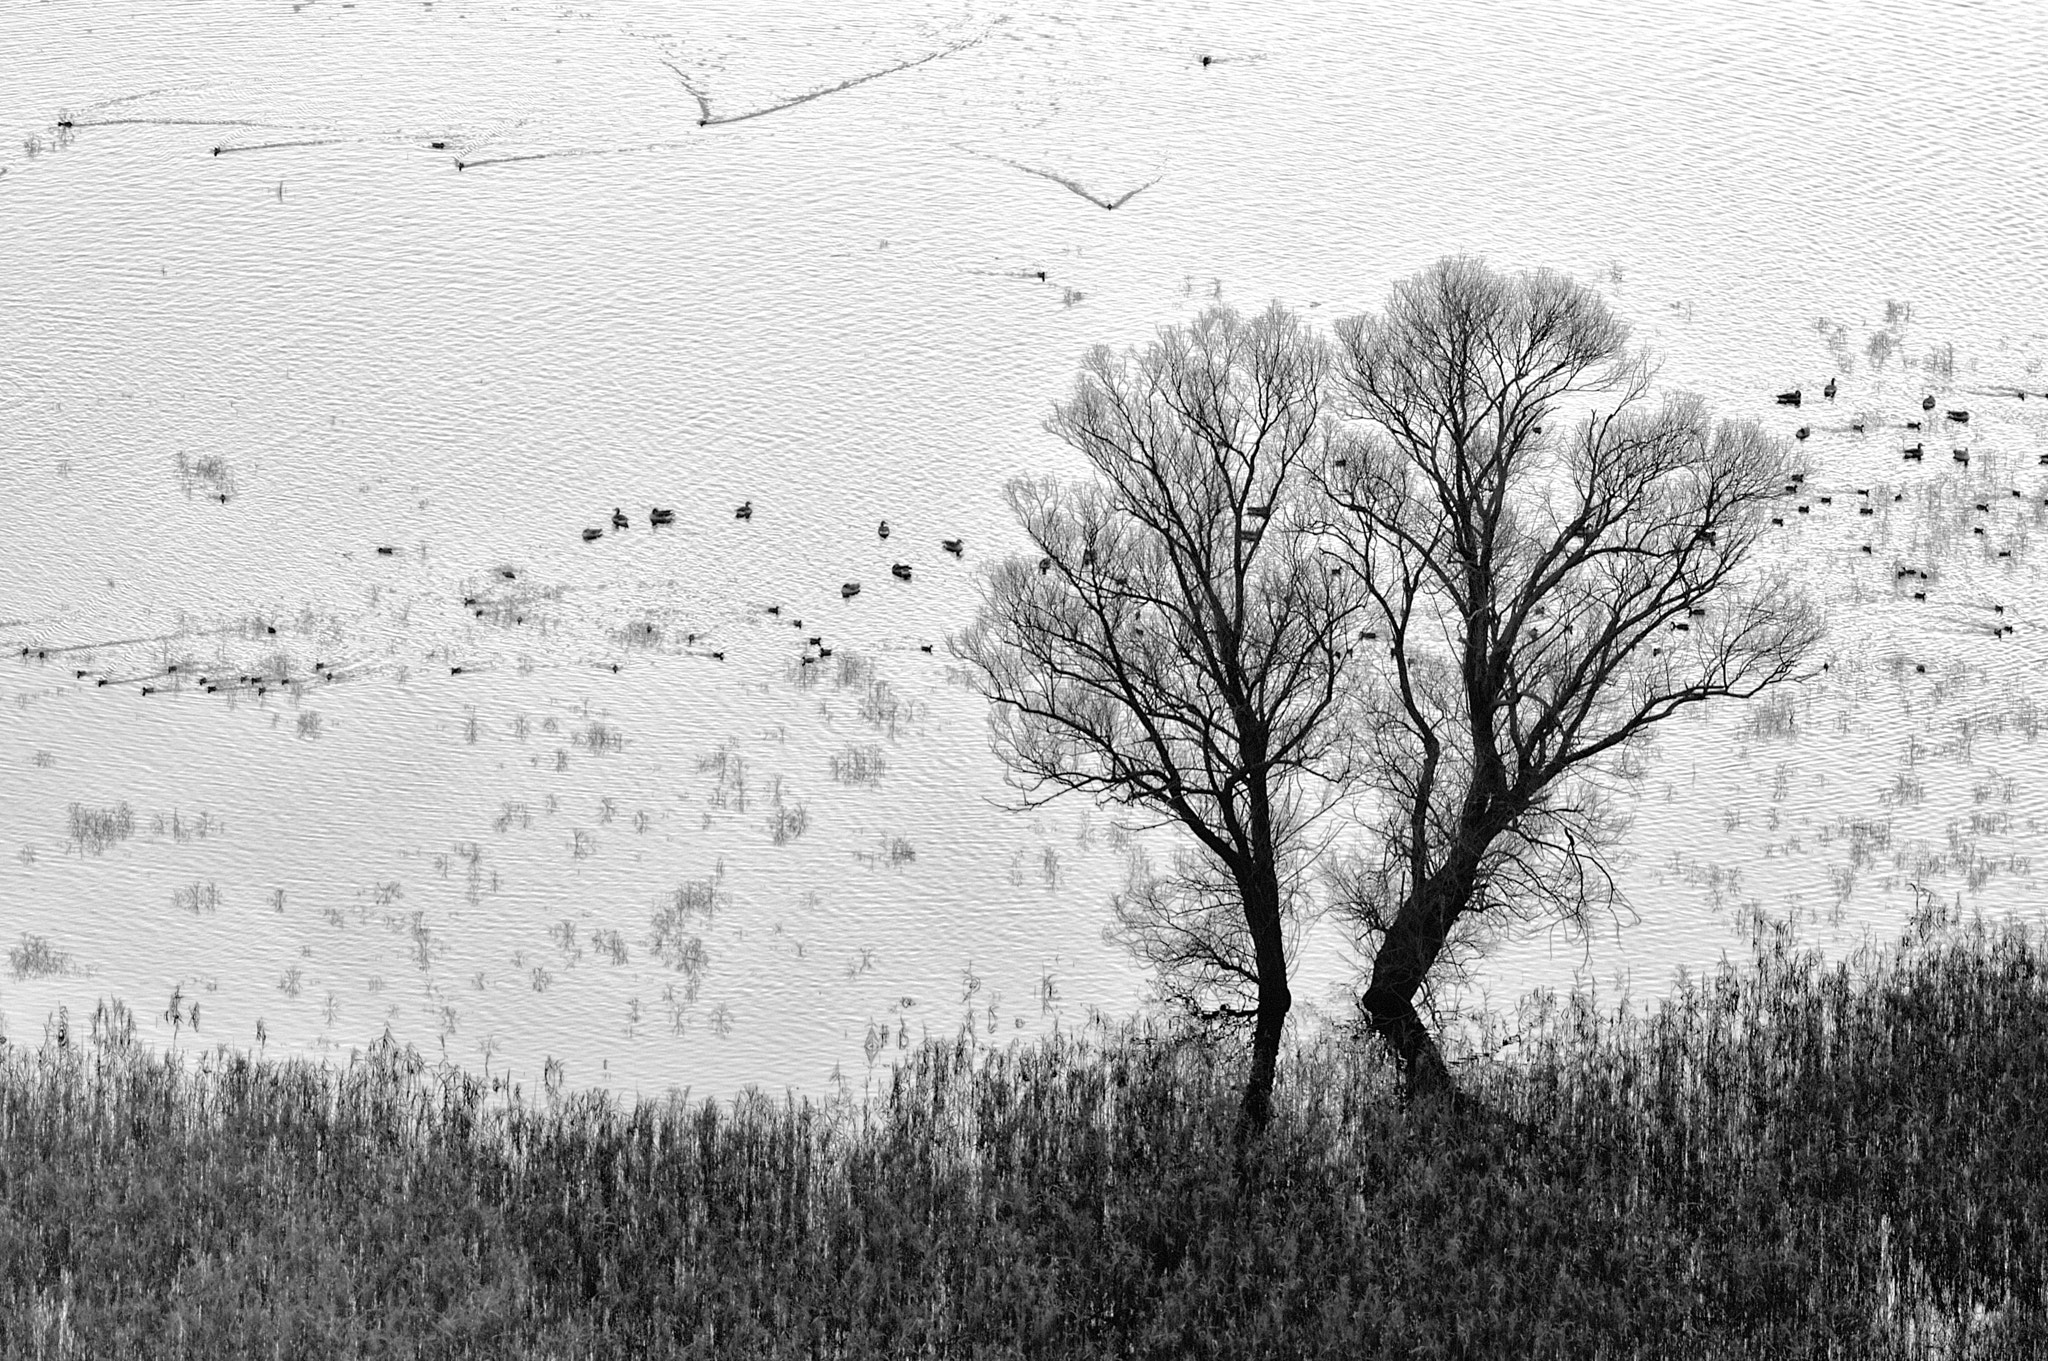 Photograph Trees and ducks by Lorenzo Cavalieri on 500px